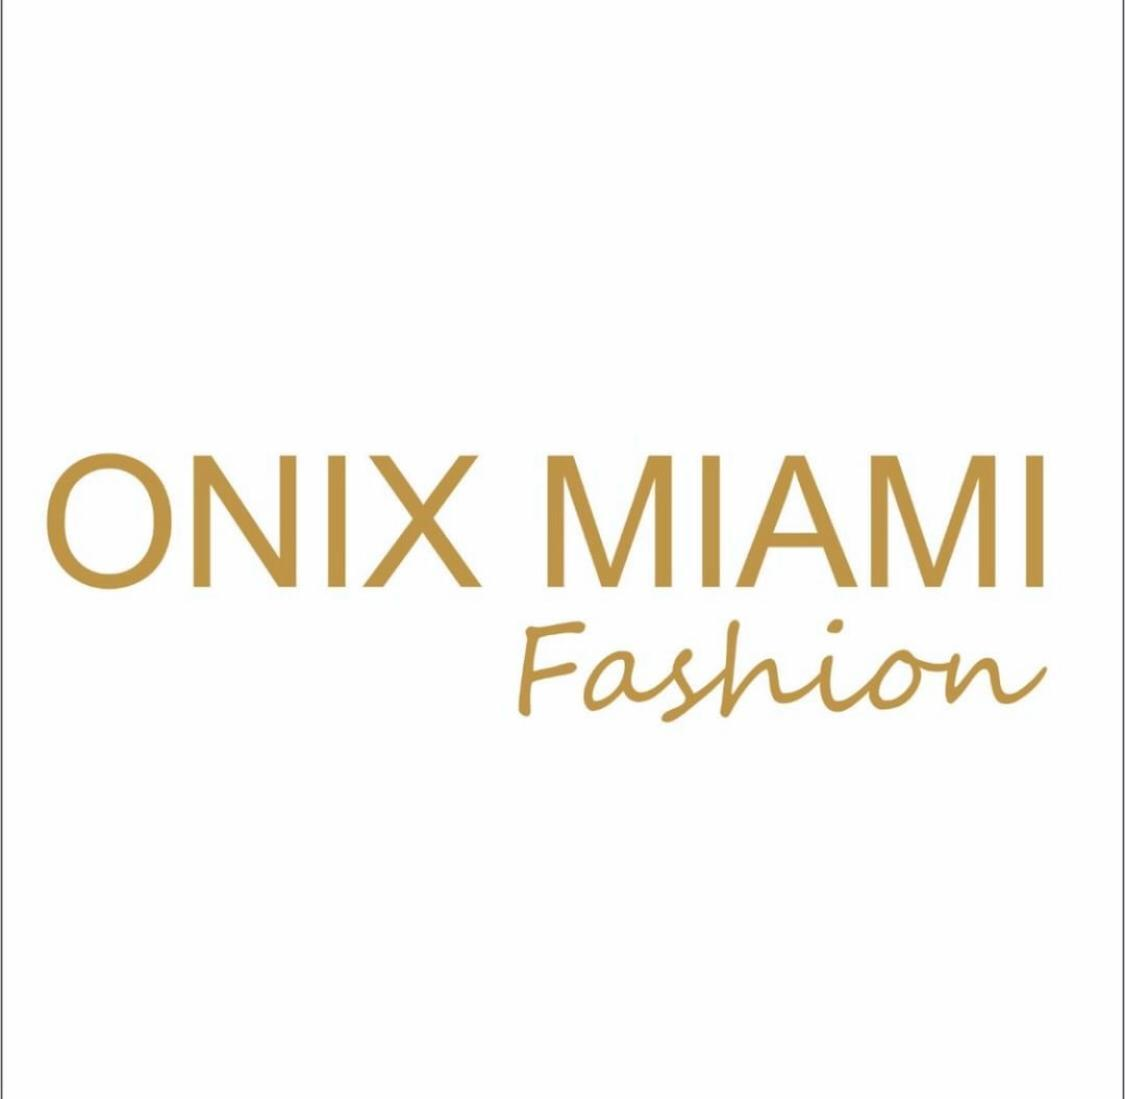 ONIX MIAMI FASHION